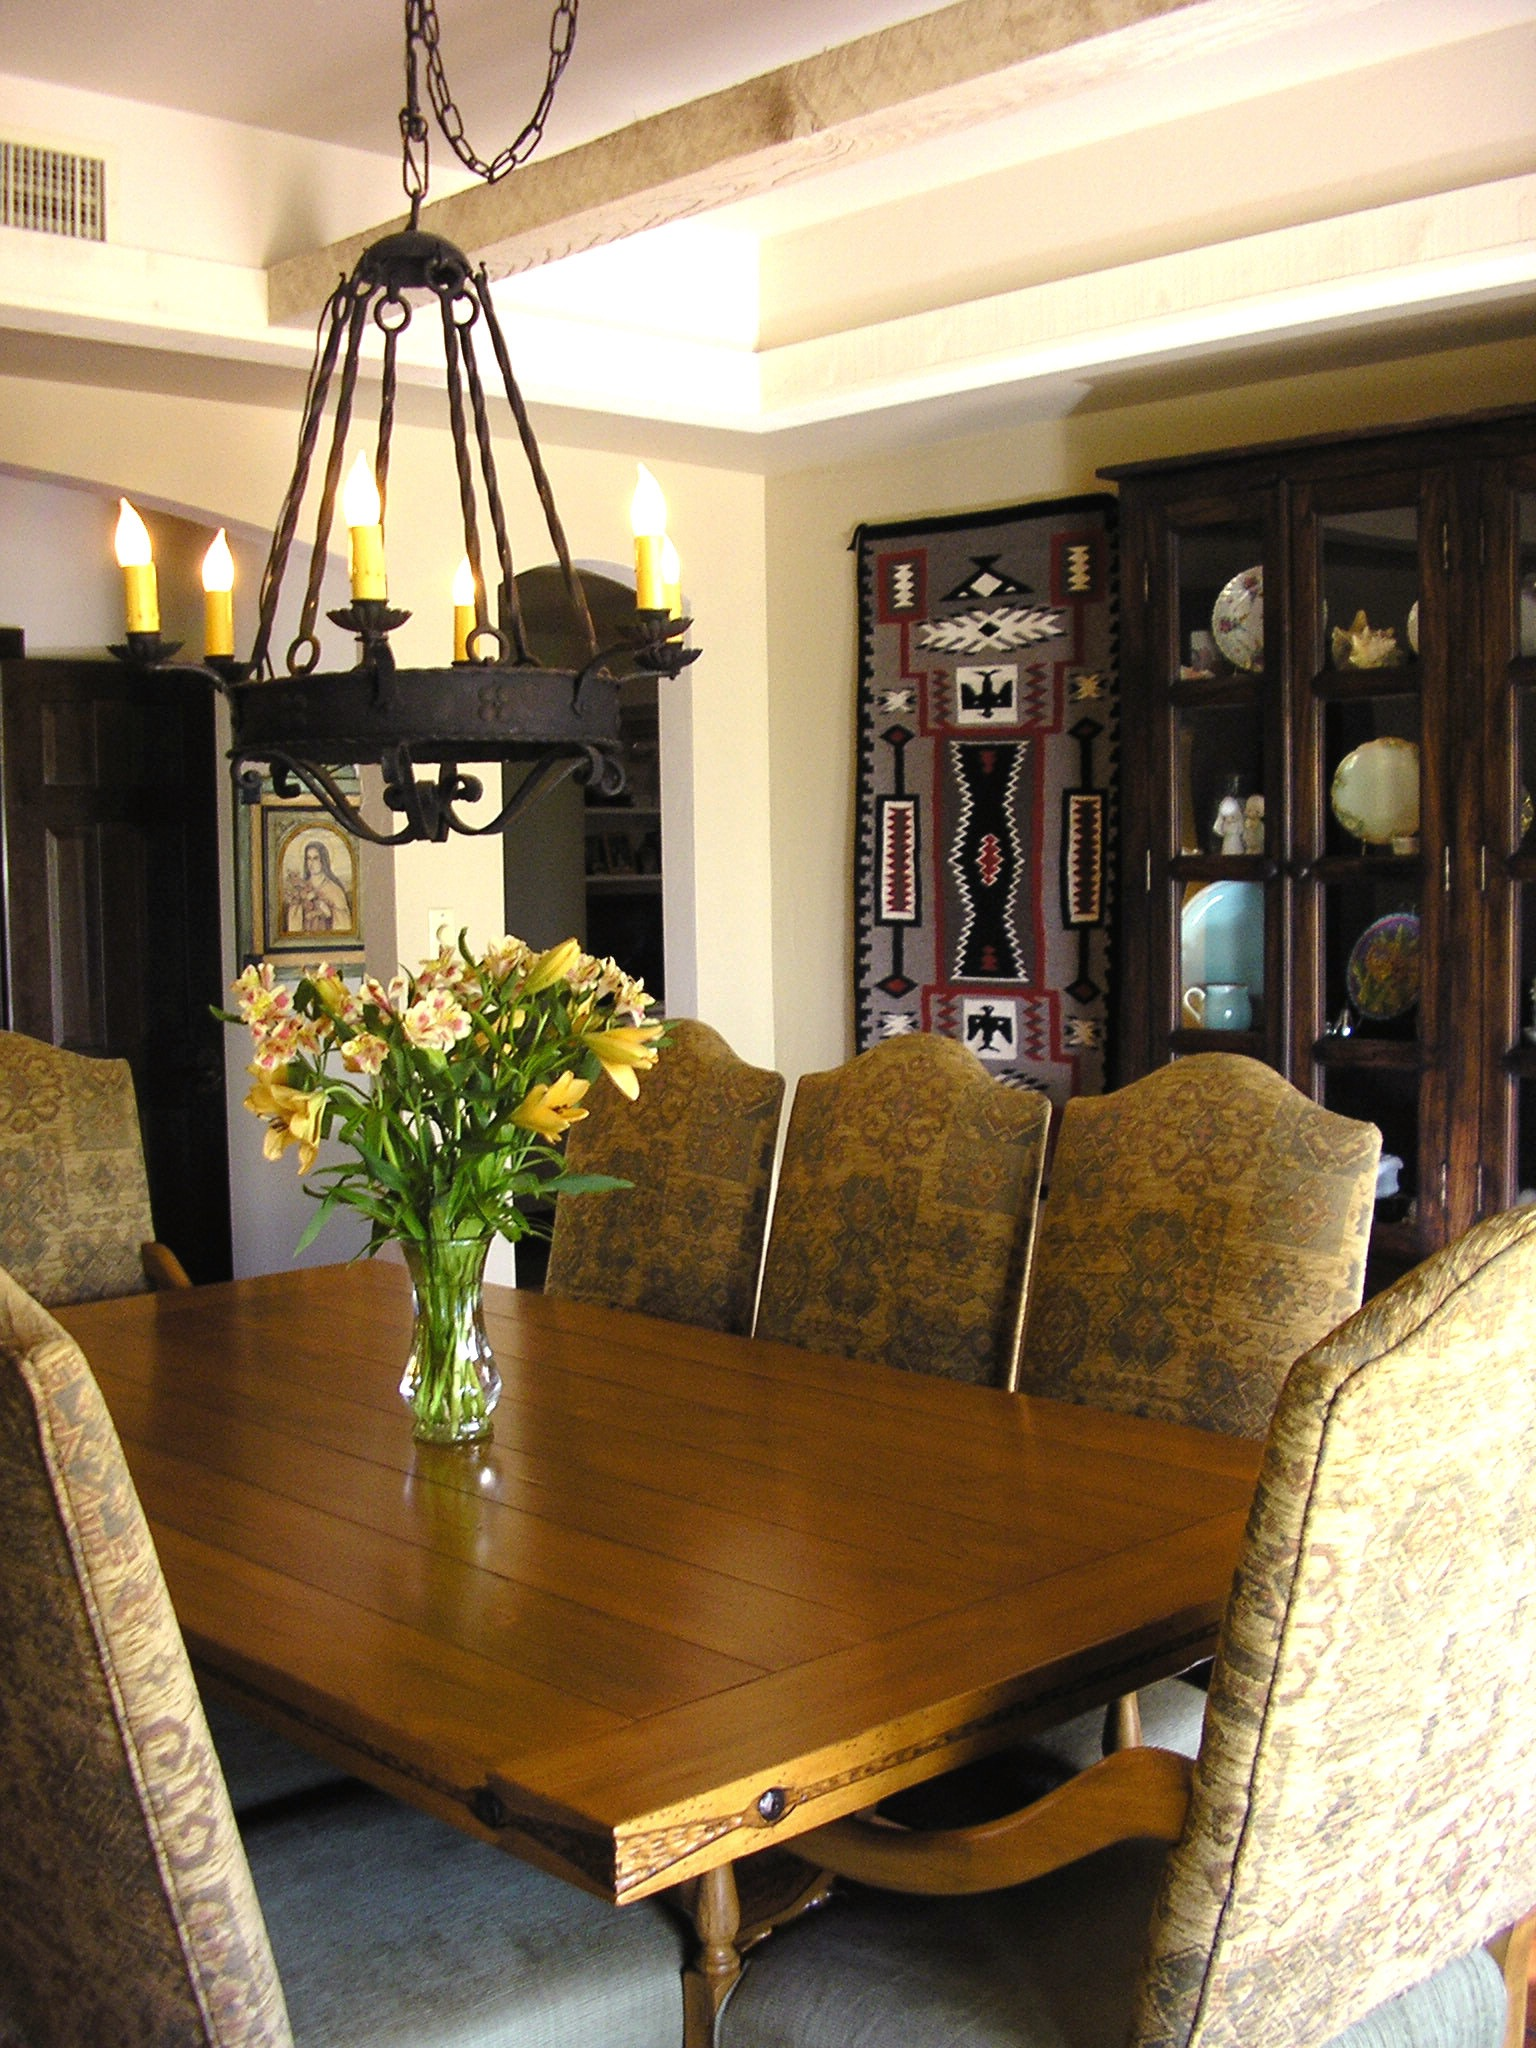 Neutral Southwestern Dining Room With Iron Chandelier (View 6 of 11)